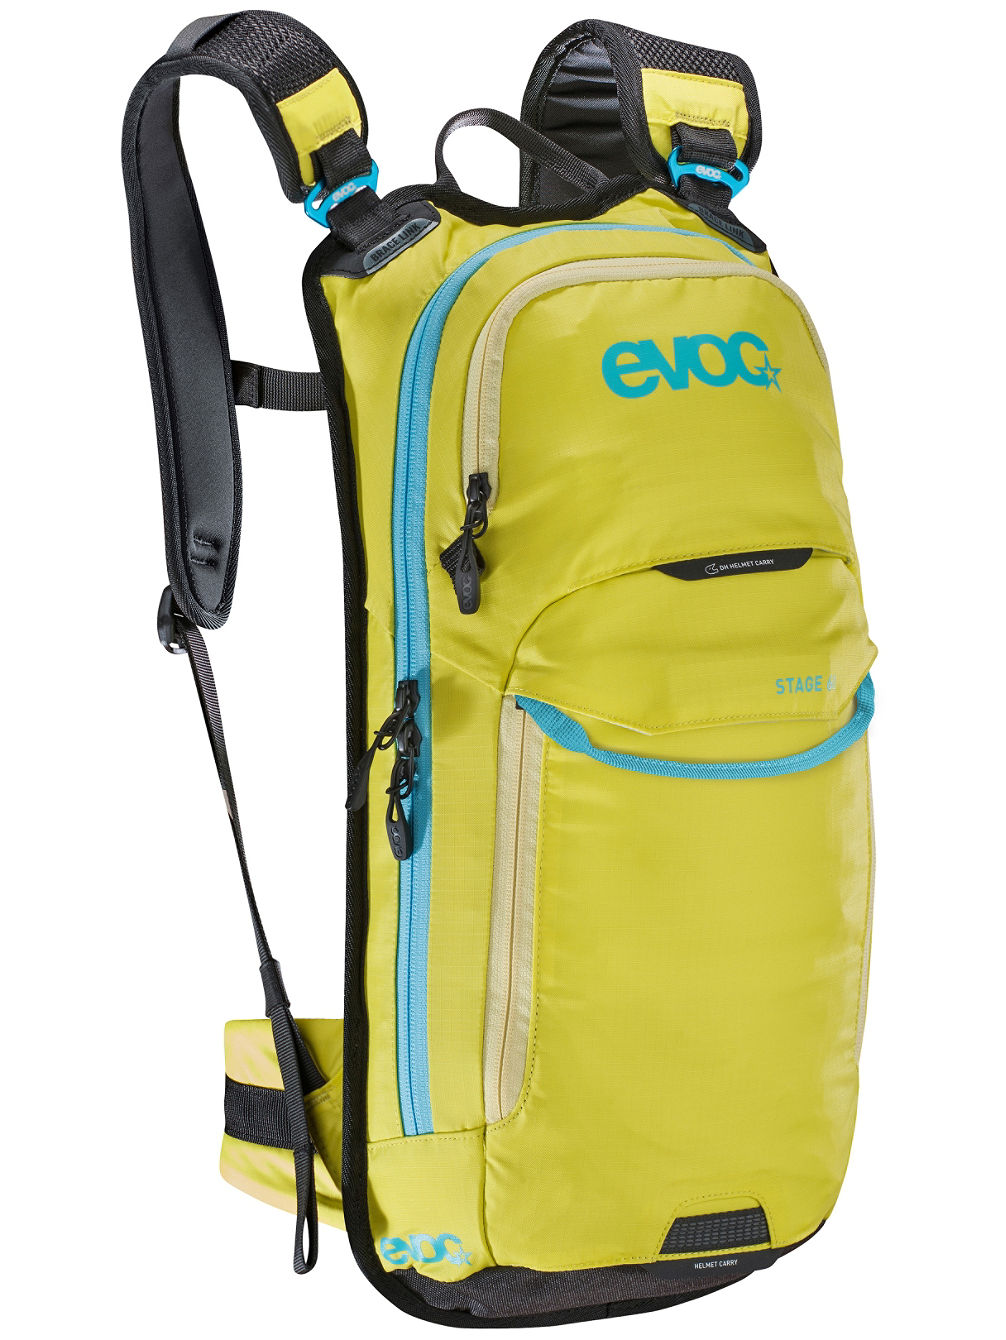 Stage 6L + 2L Bladder Backpack